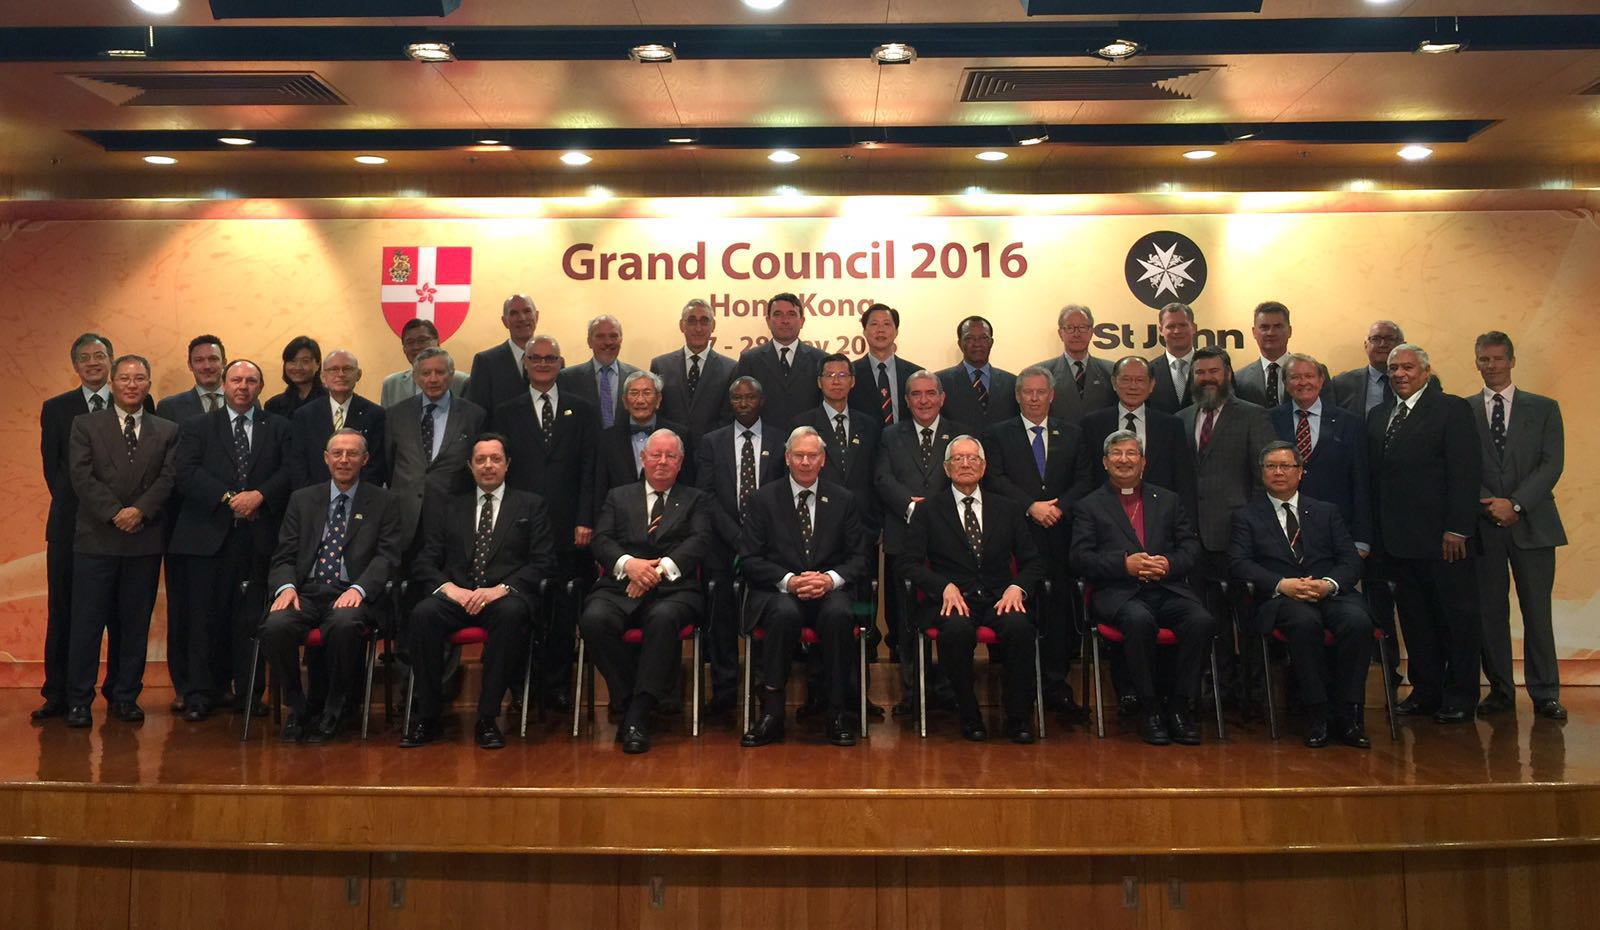 Attendees of the Grand Council meeting